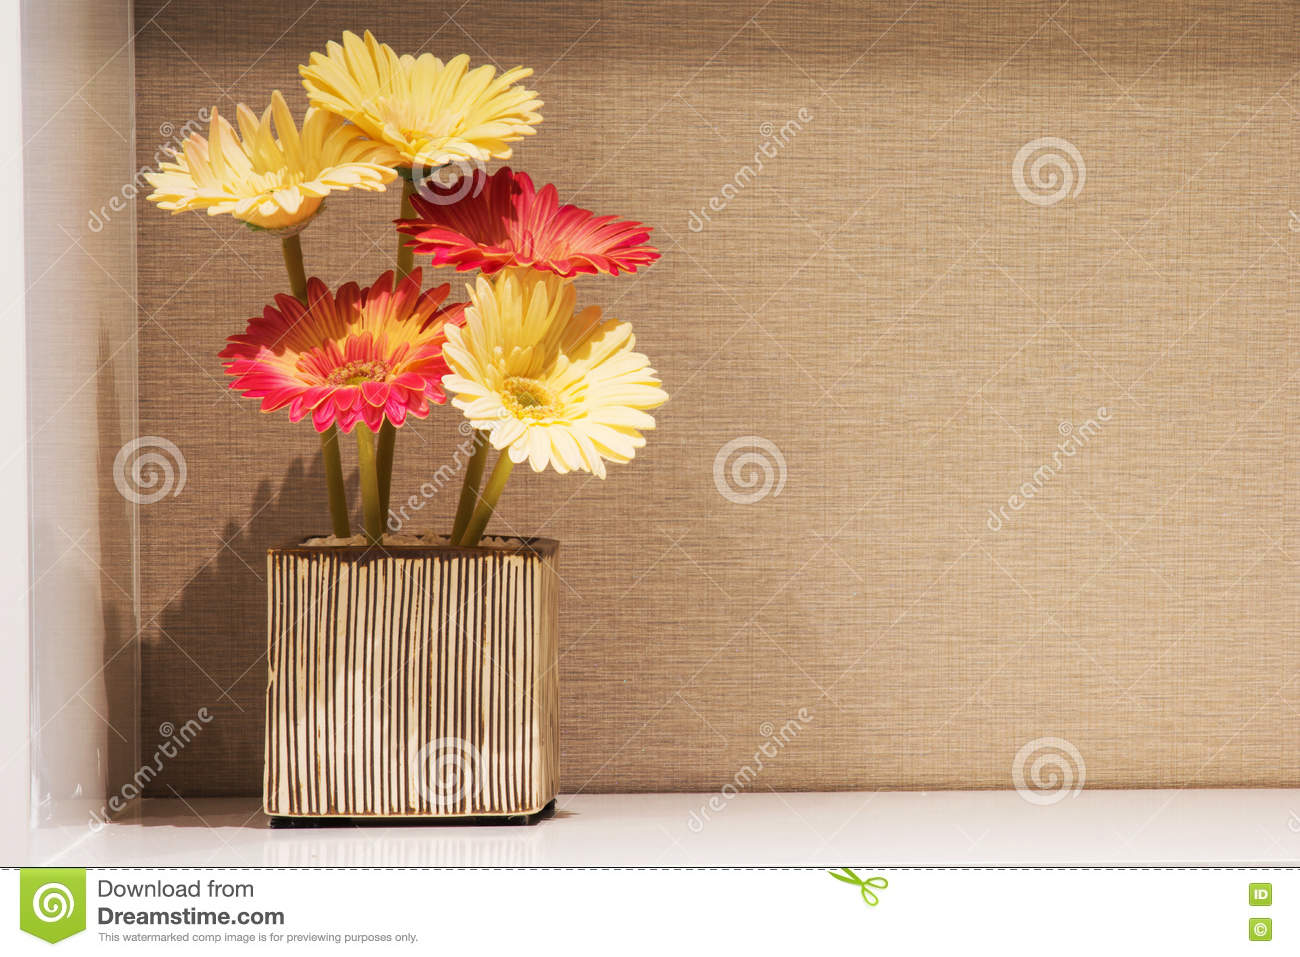 Gerbera Flower In Vase Stock Photo Image Of Flower Color 72594122